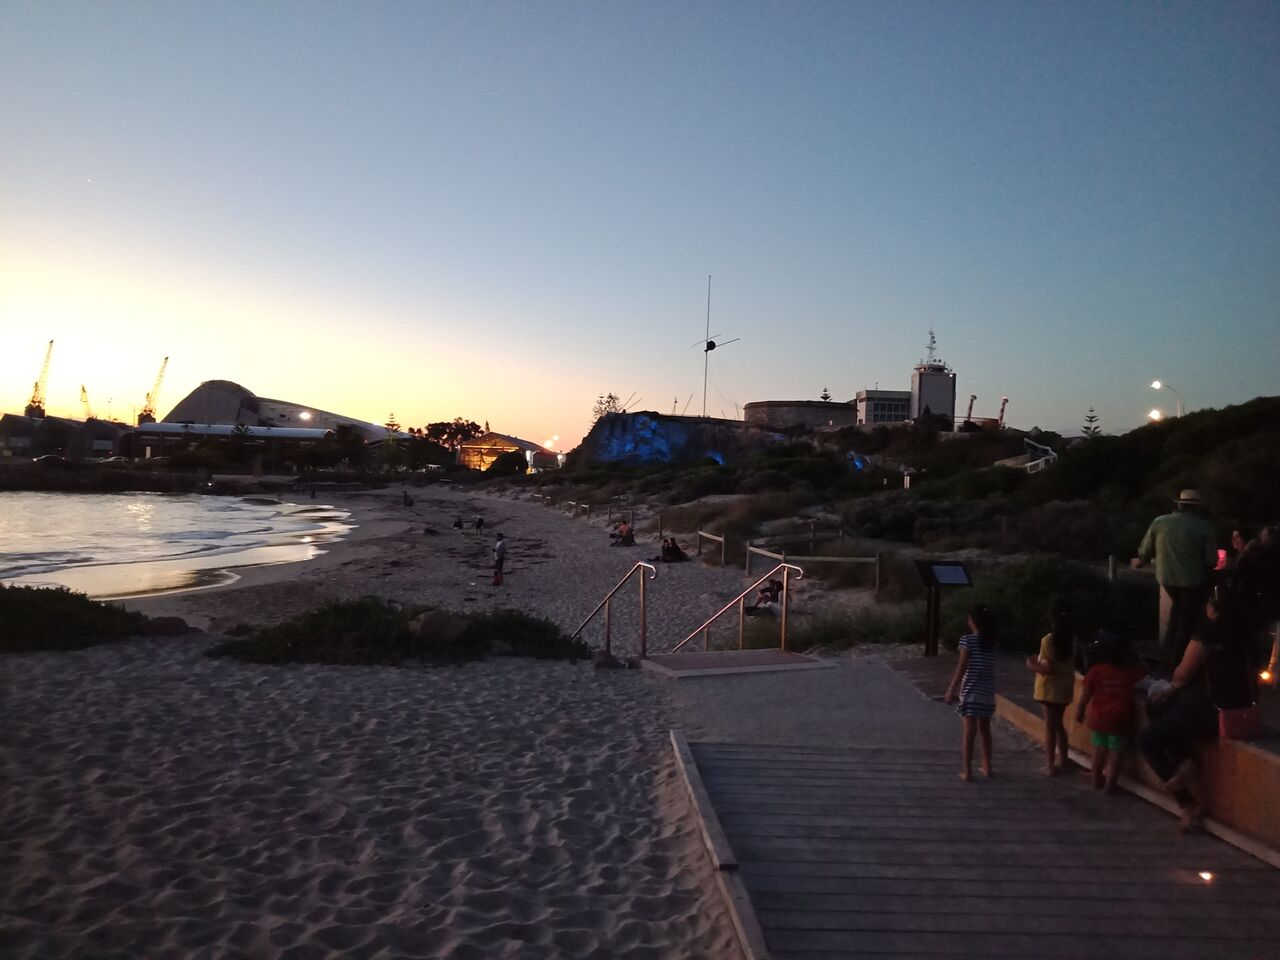 View of the Roundhouse and illuminated walls from the beach at twilight.